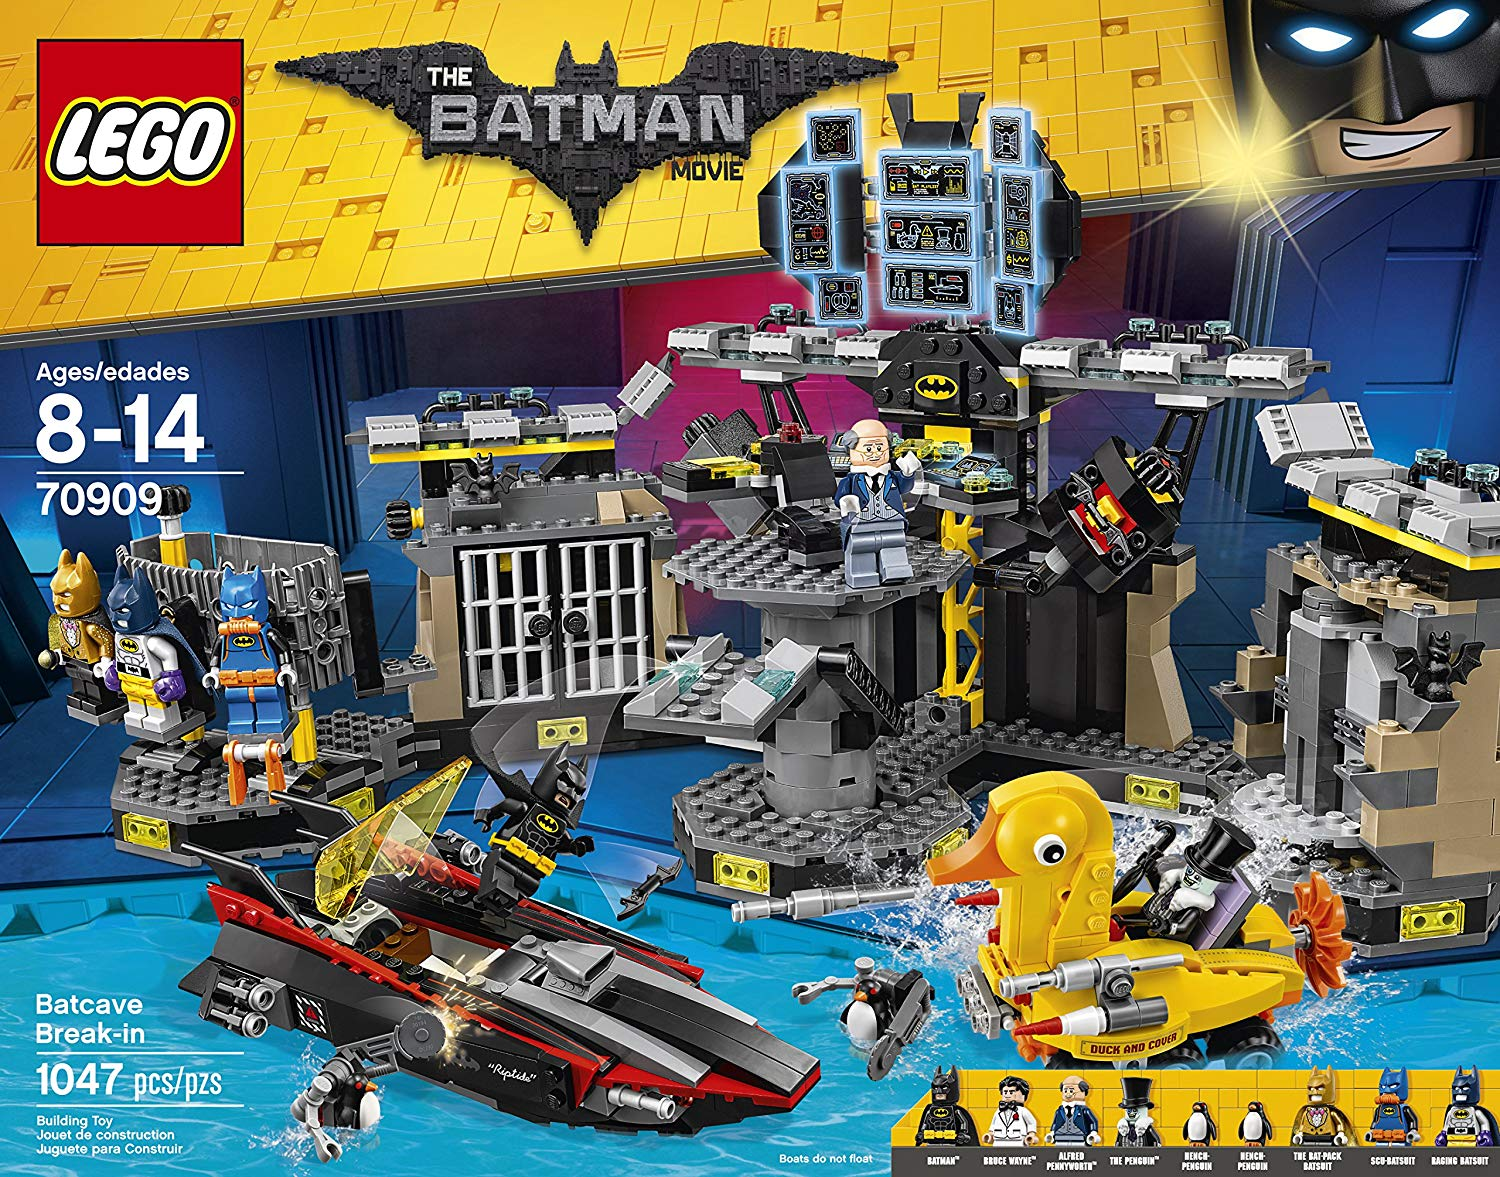 The LEGO Batman Movie sets on sale at Amazon News | The ...